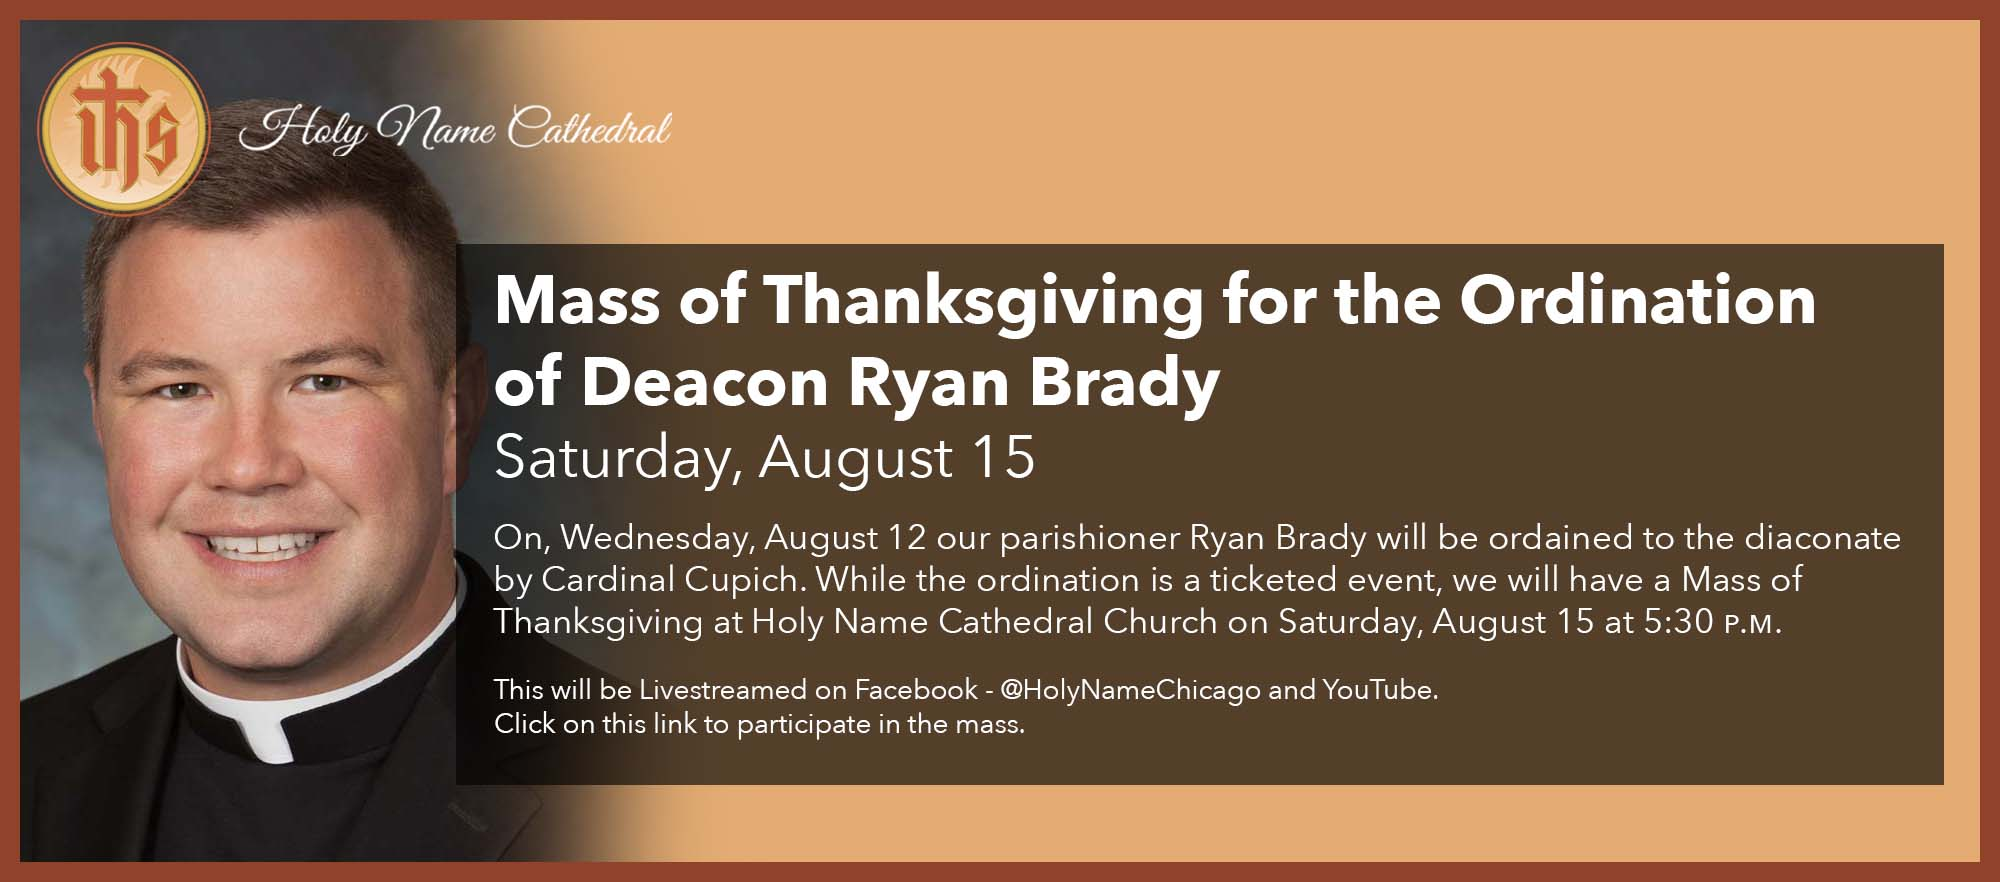 Mass of Thanksgiving for the Ordination of Deacon Ryan Brady